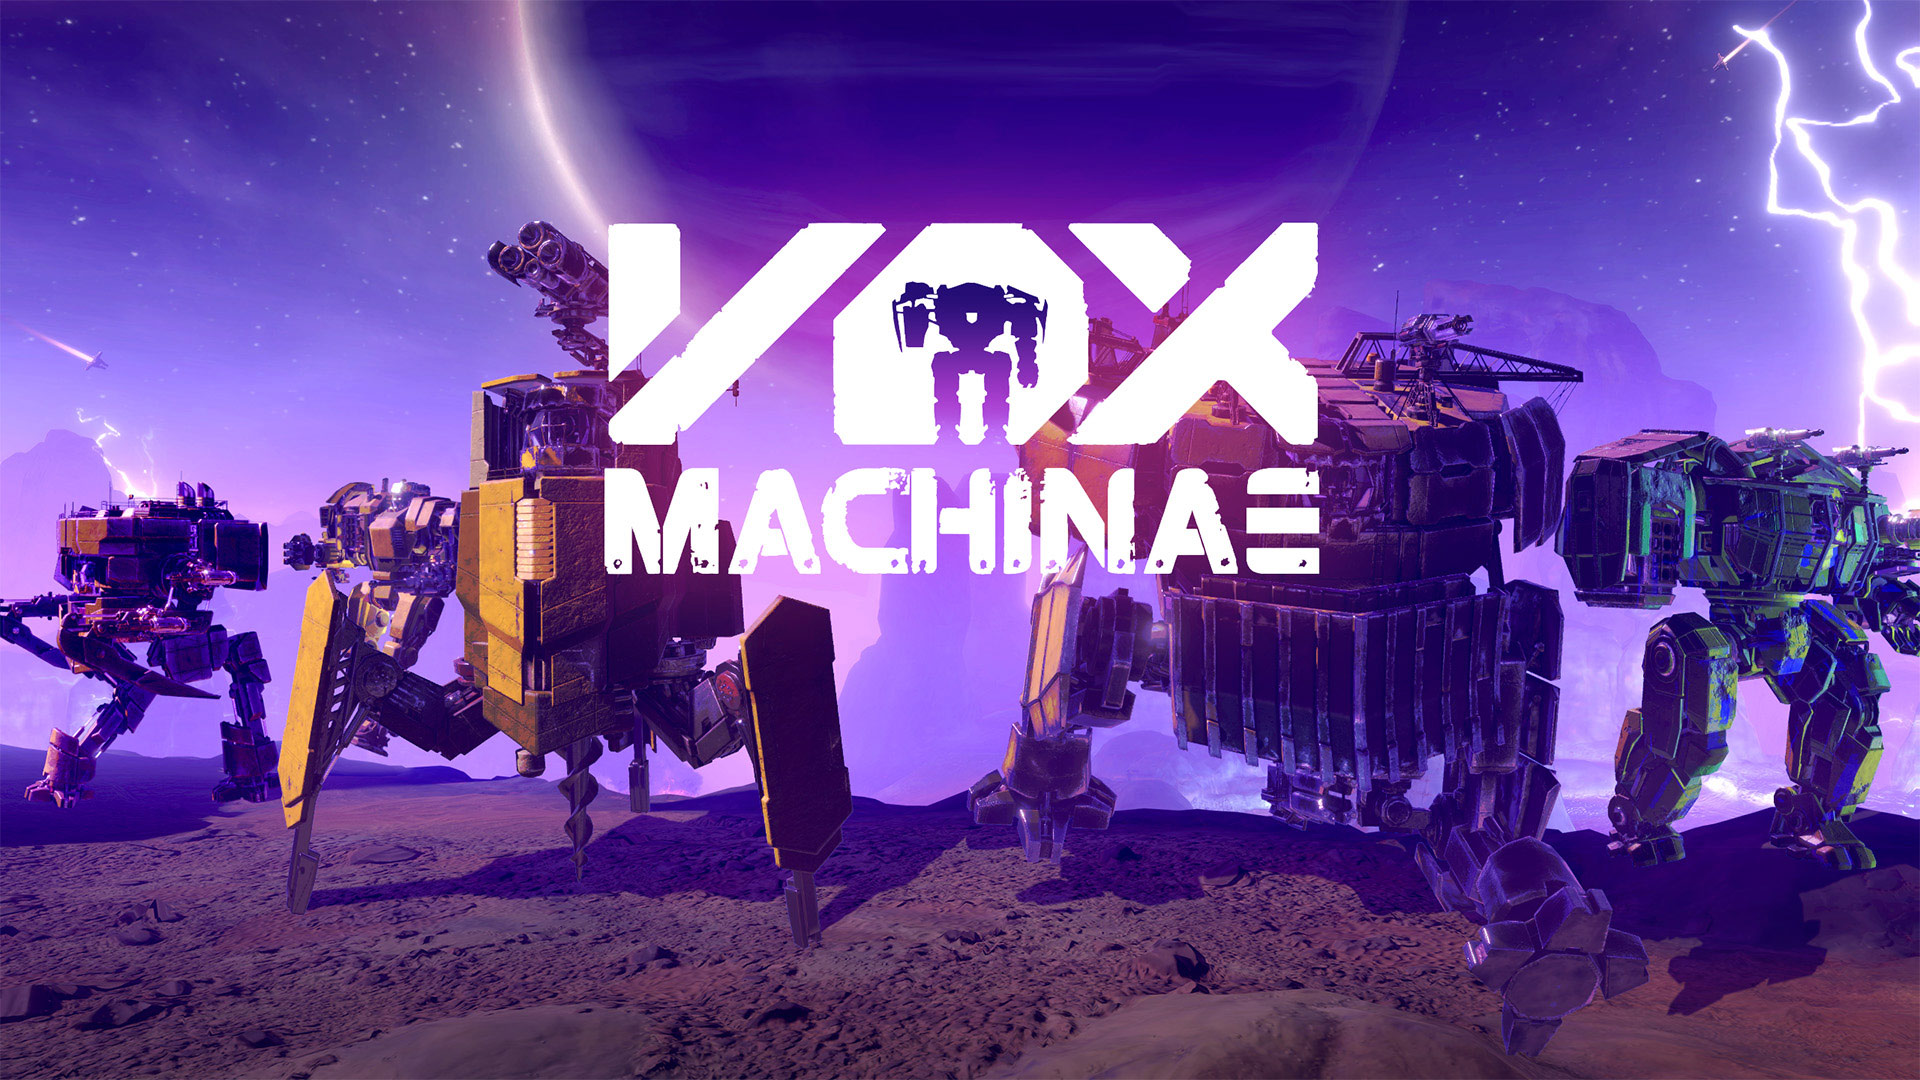 Vox Machinae' Early Access Review: VR's Latest & Greatest